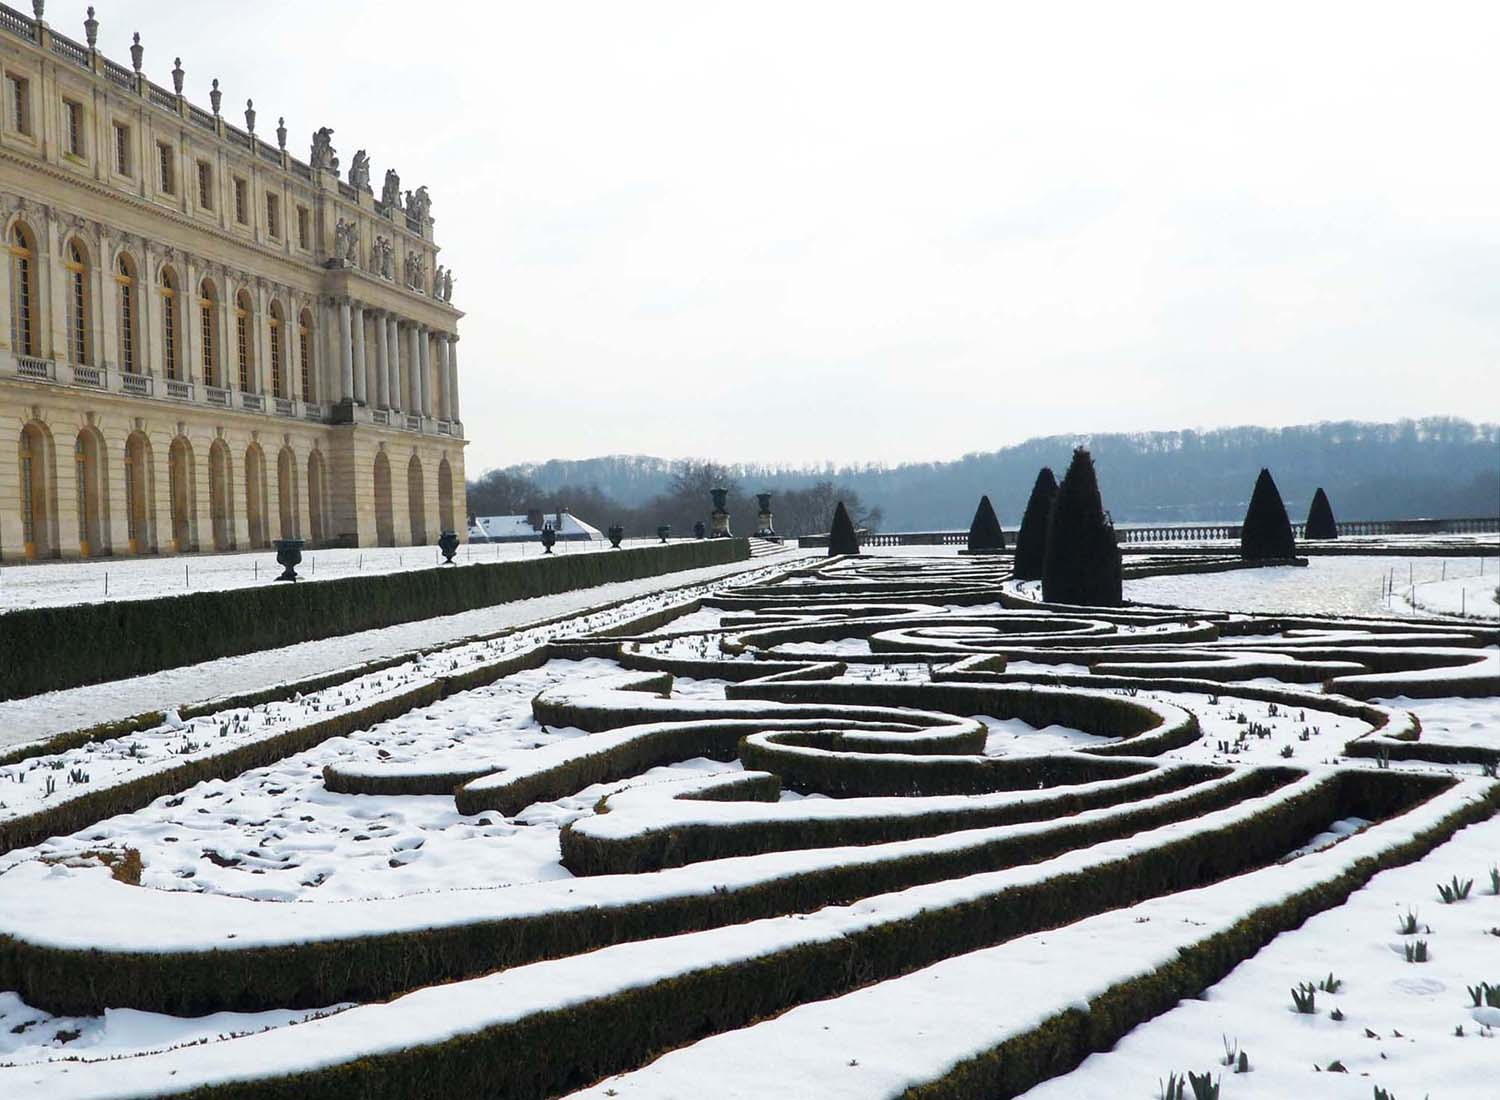 Snow in the gardens at Versailles